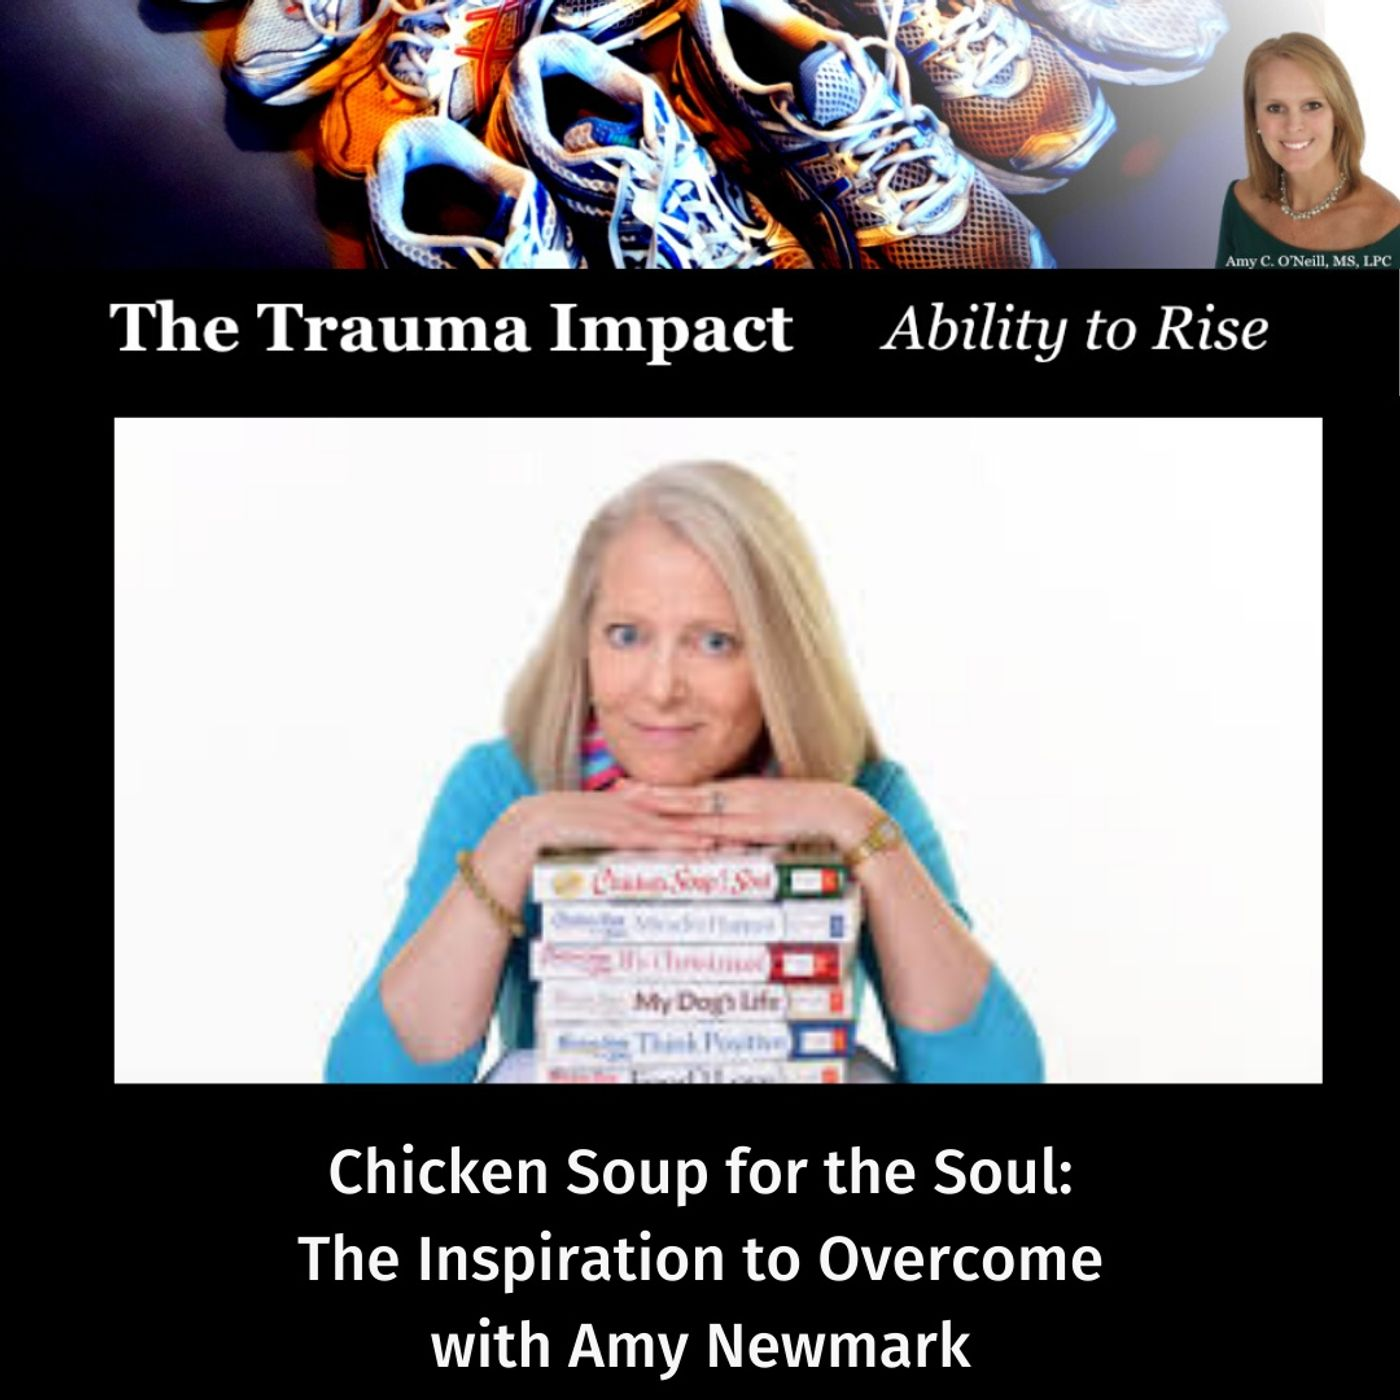 Chicken Soup for the Soul and the Inspiration to Overcome with Amy Newmark